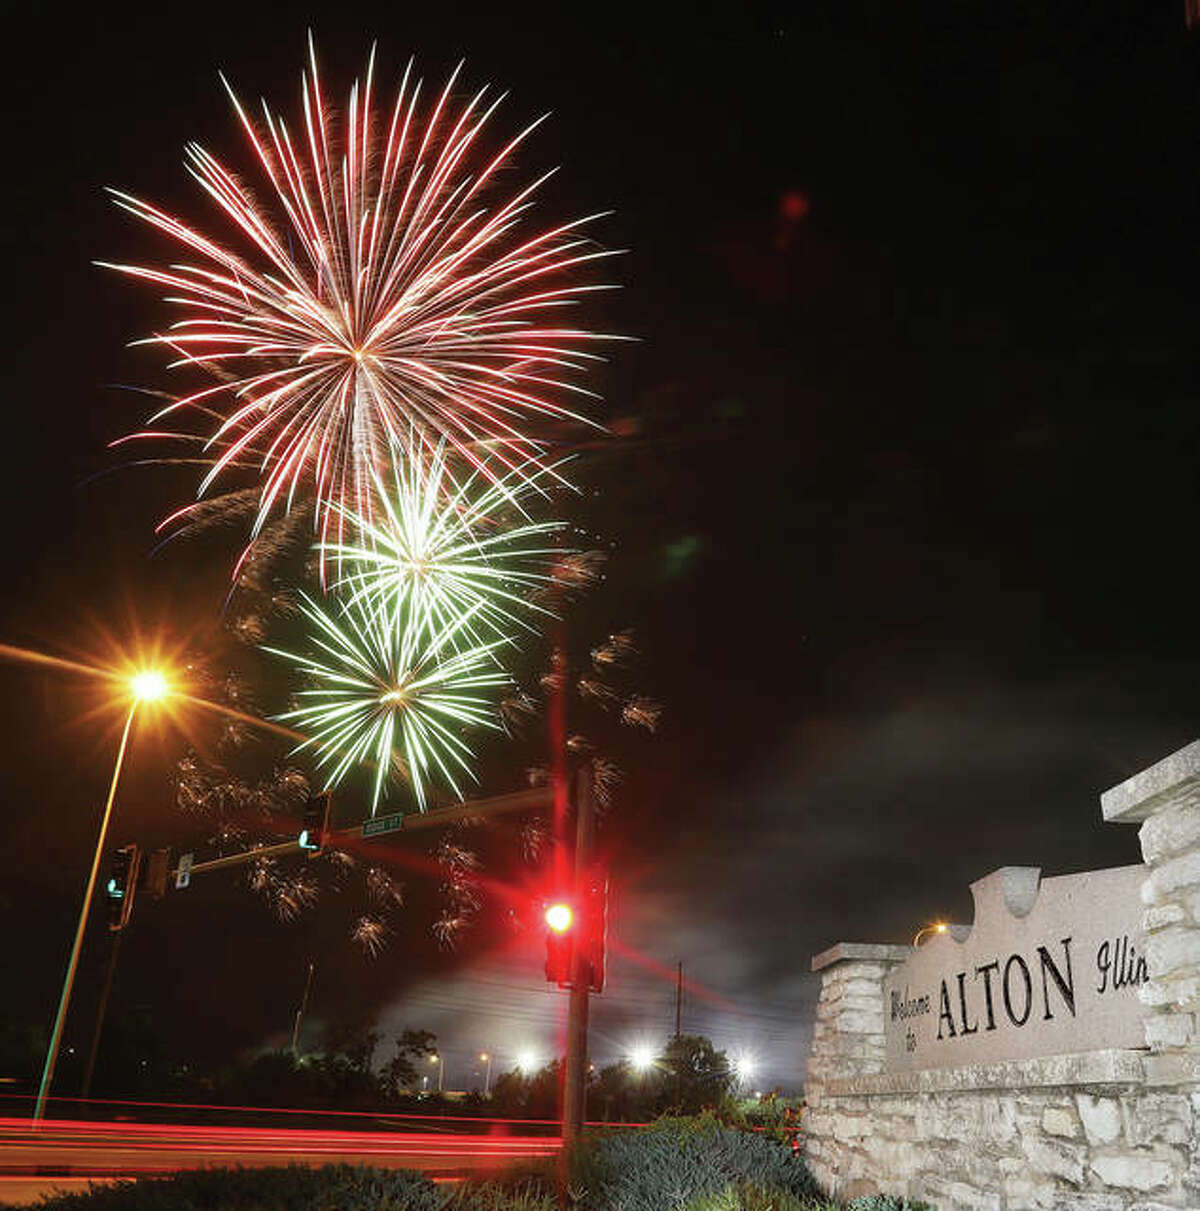 Fireworks explode over the Alton riverfront Thuirsday night as seen from the corner of Ridge Street and Landmarks Boulevard in Alton. Fireworks were also going off in Grafton at the Lighthouse Park thanks to the Great Rivers and Routes Tourism Bureau of Sothwestern Illinois.